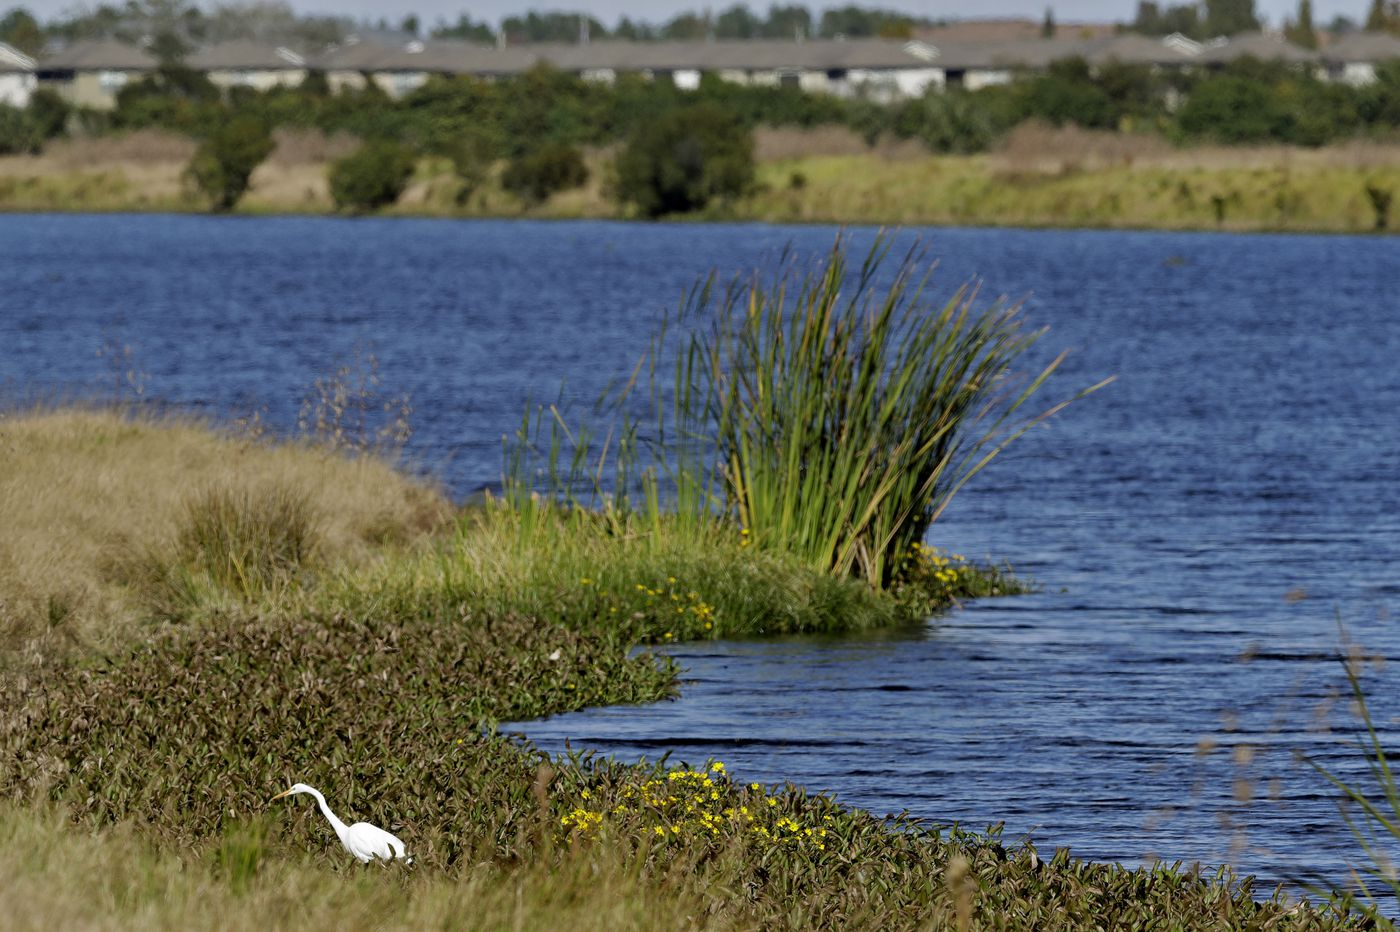 Trump aims to remove waterway protections, aiding developers